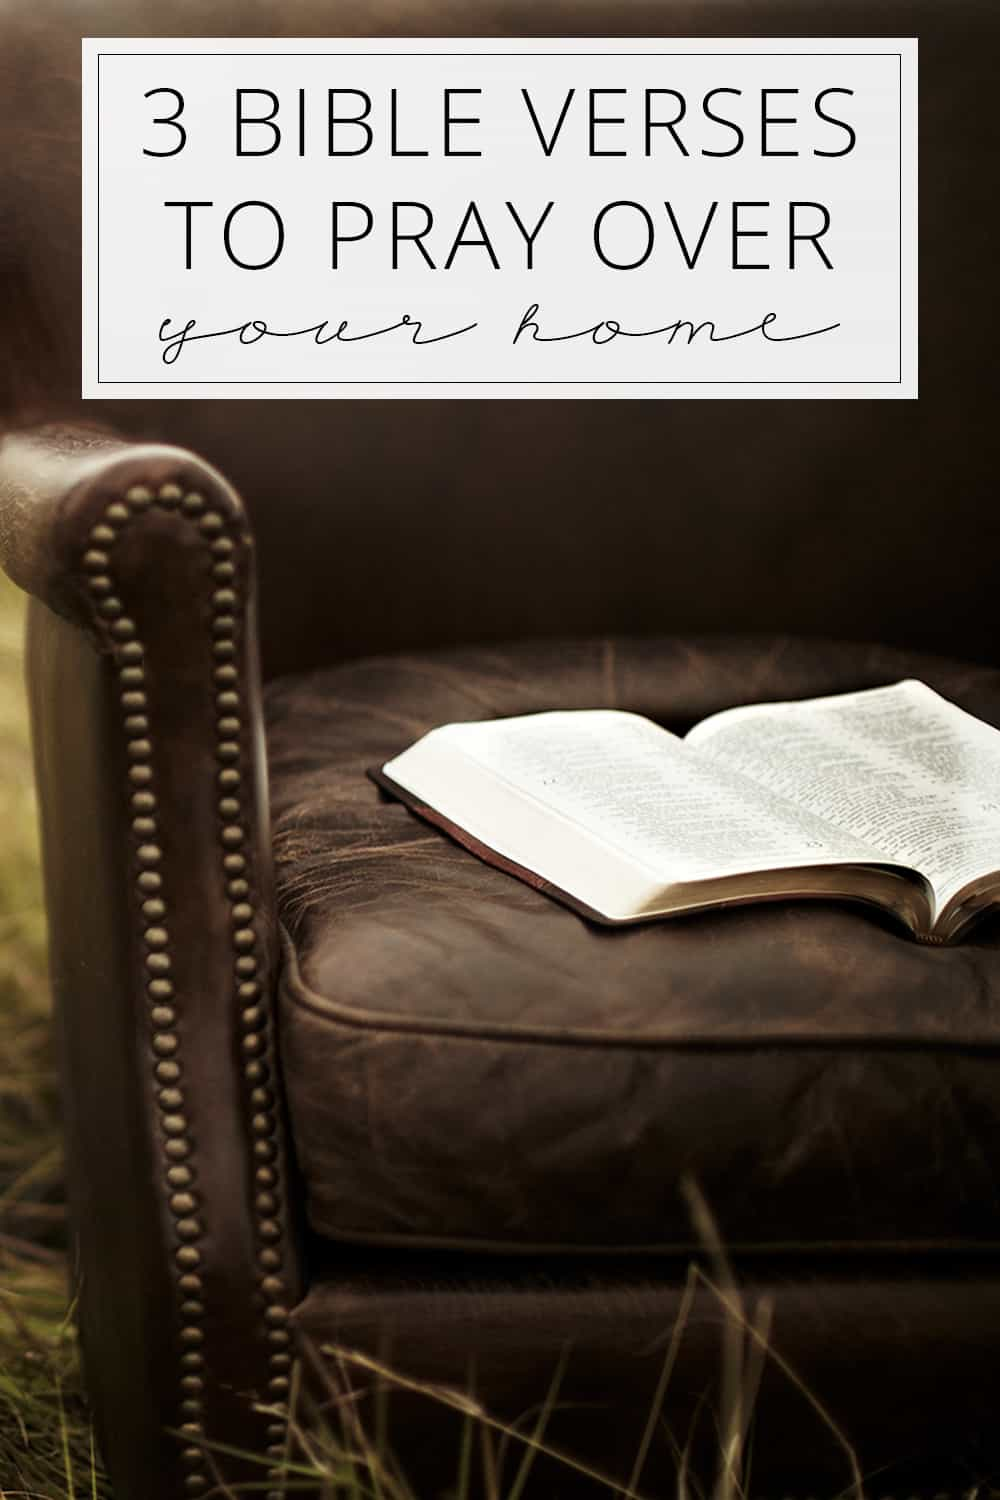 3 Bible Verses to Pray Over Your Home to Bless It